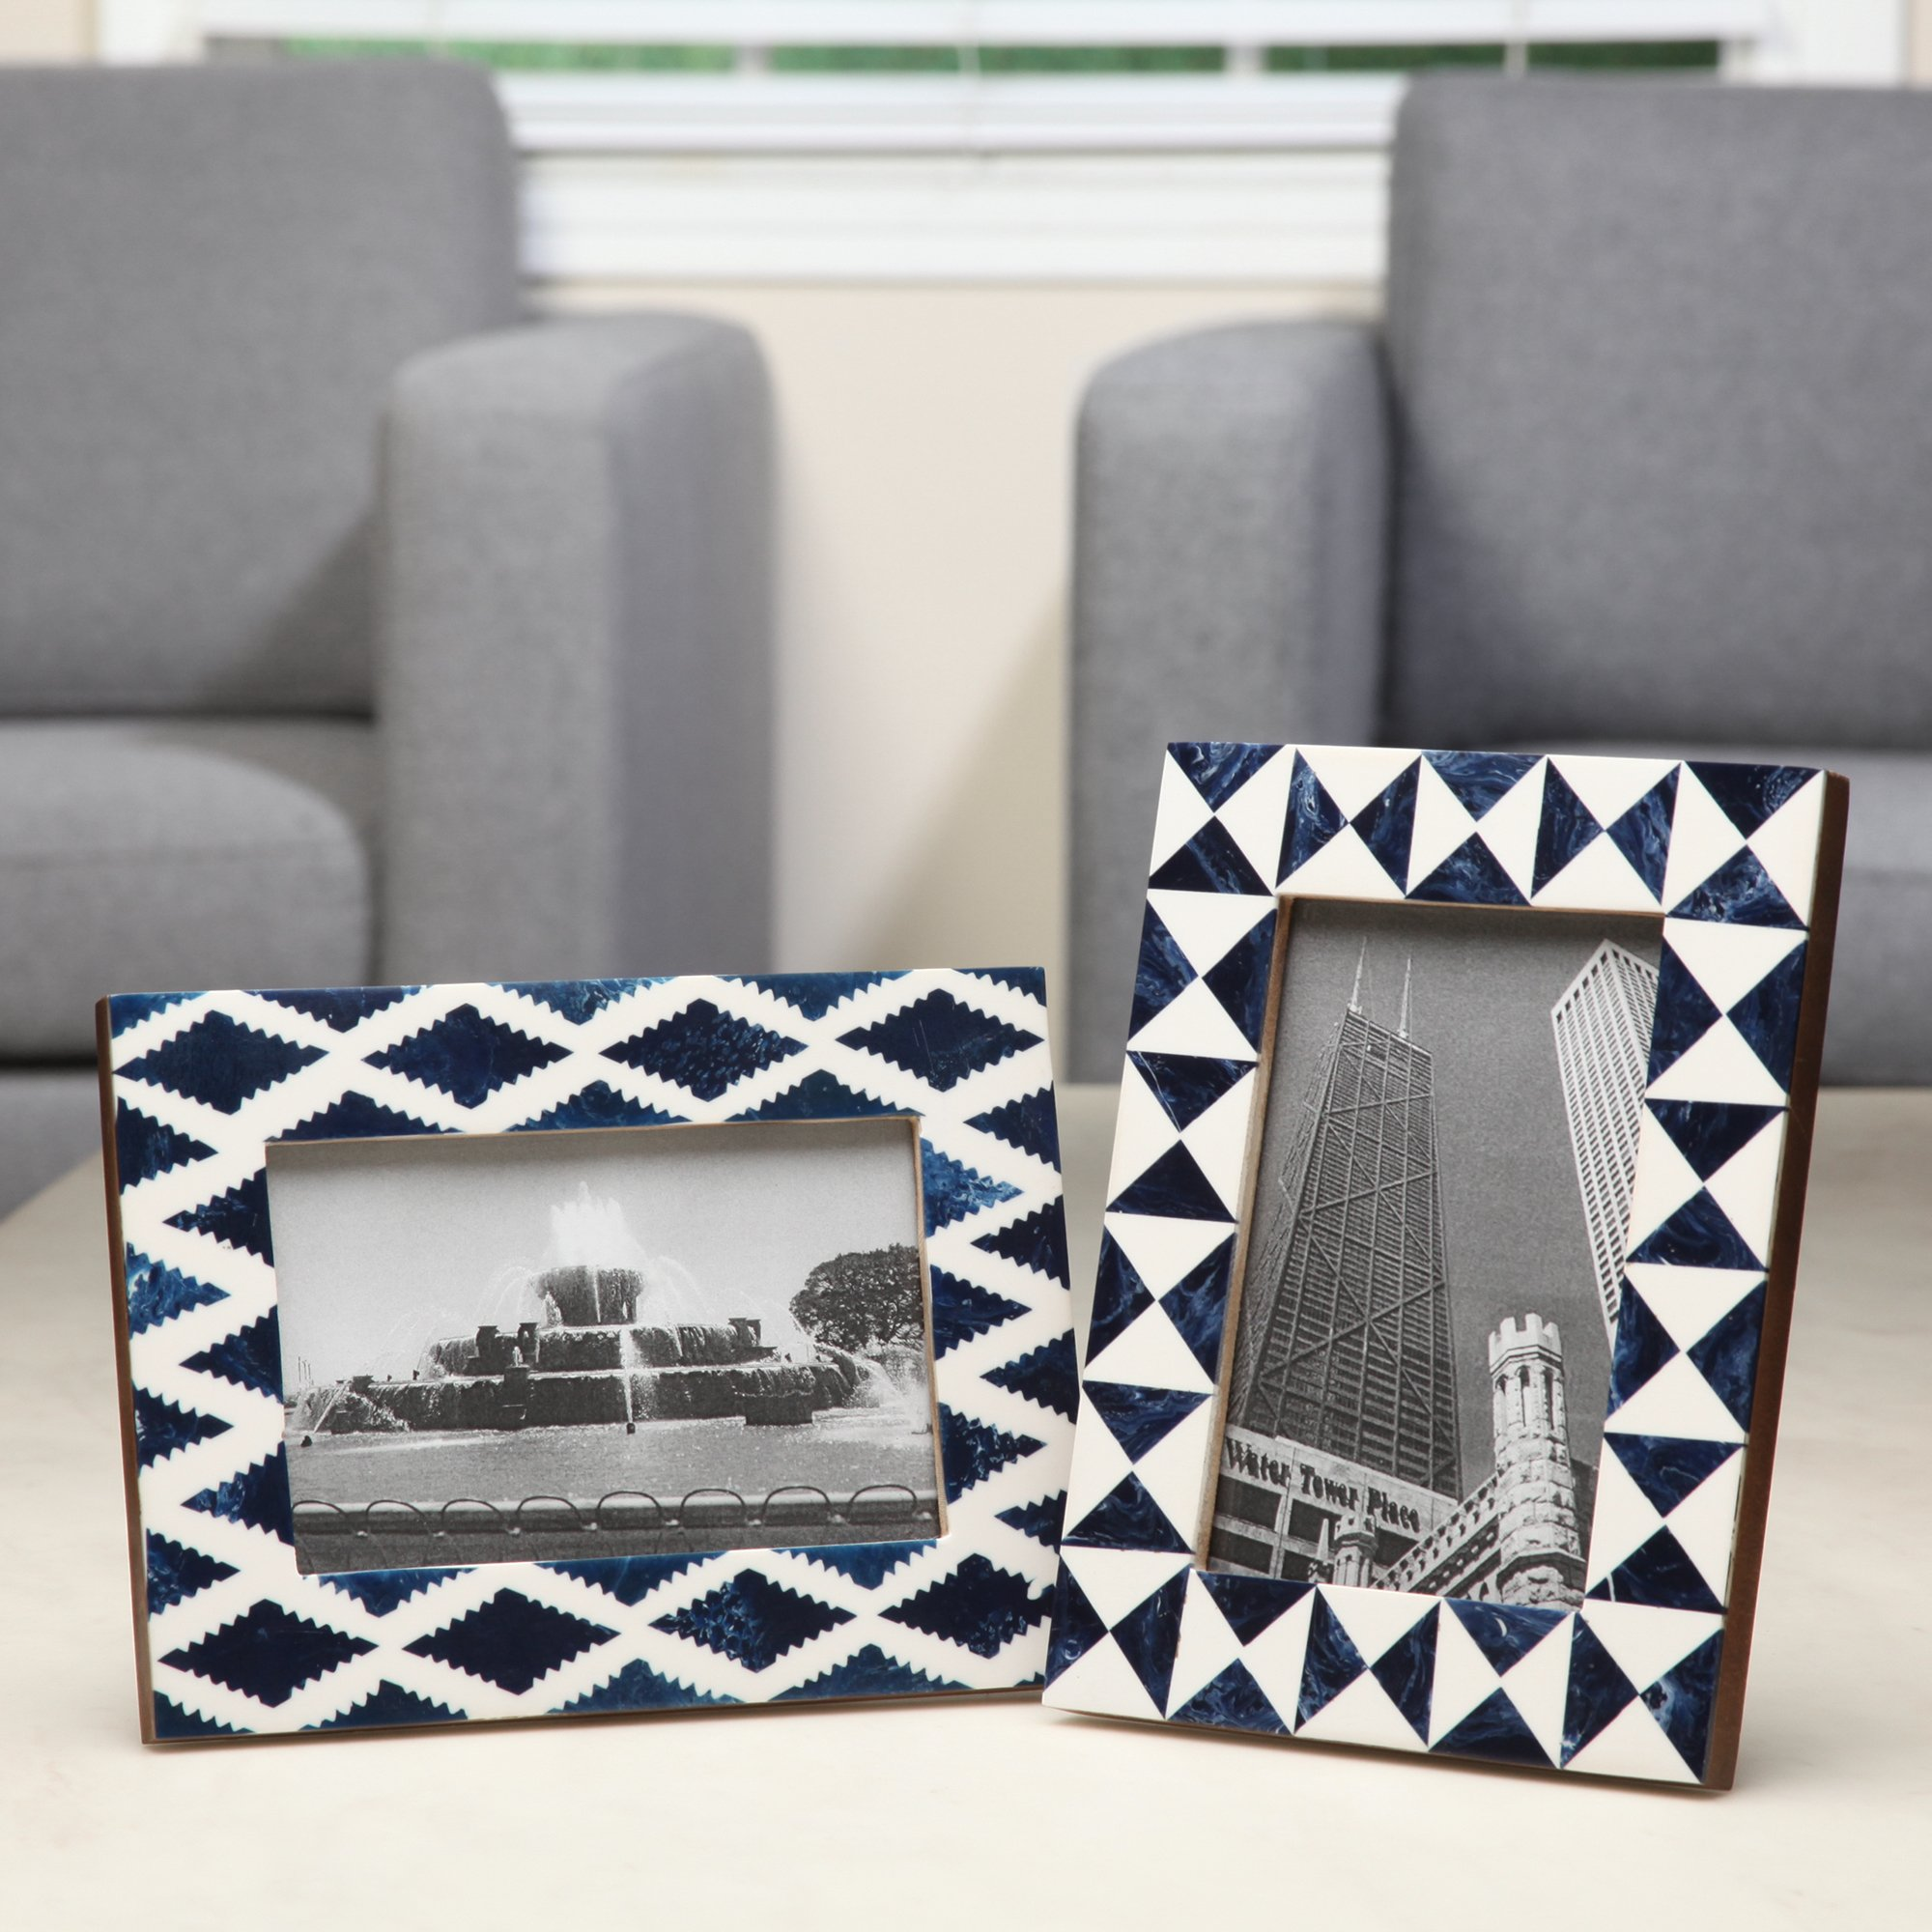 Hosley Indigo Geo Resin Tabletop Picture Frame, 4x6. Ideal Gift for Home, Wedding, Party. Home Office, Spa P2